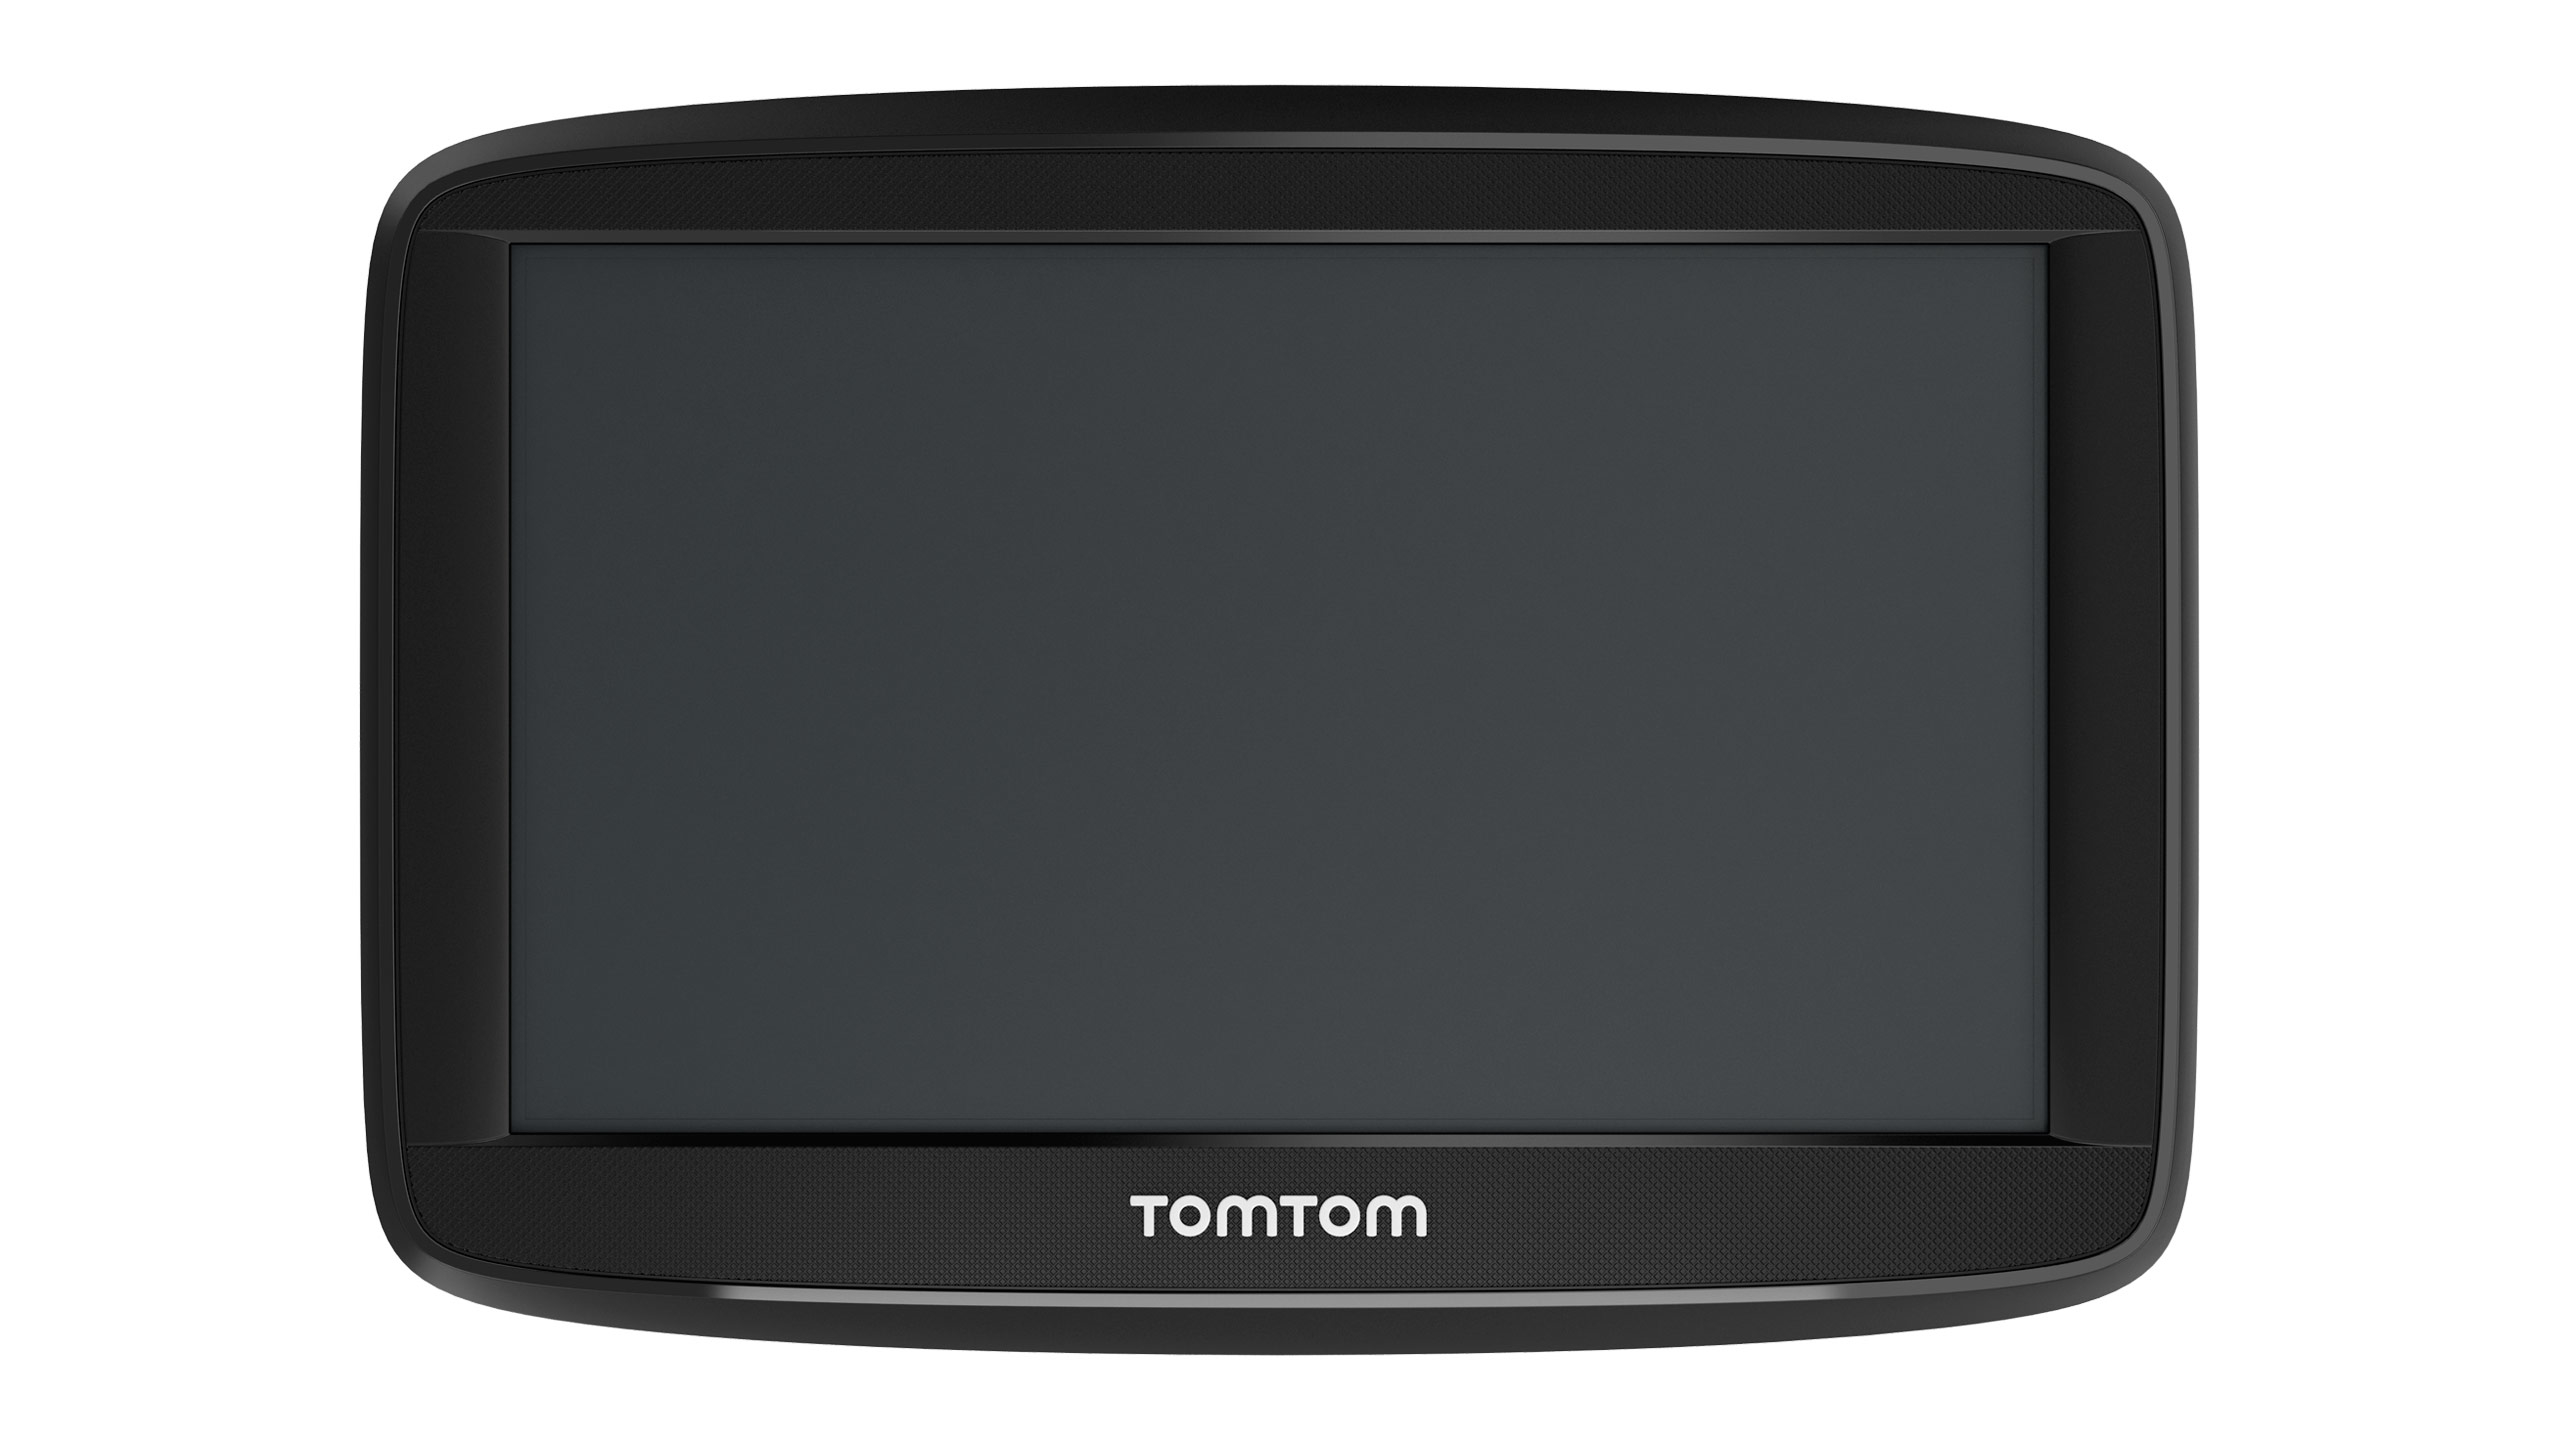 tomtom go basic 6 europe wi fi lifetime mapy. Black Bedroom Furniture Sets. Home Design Ideas